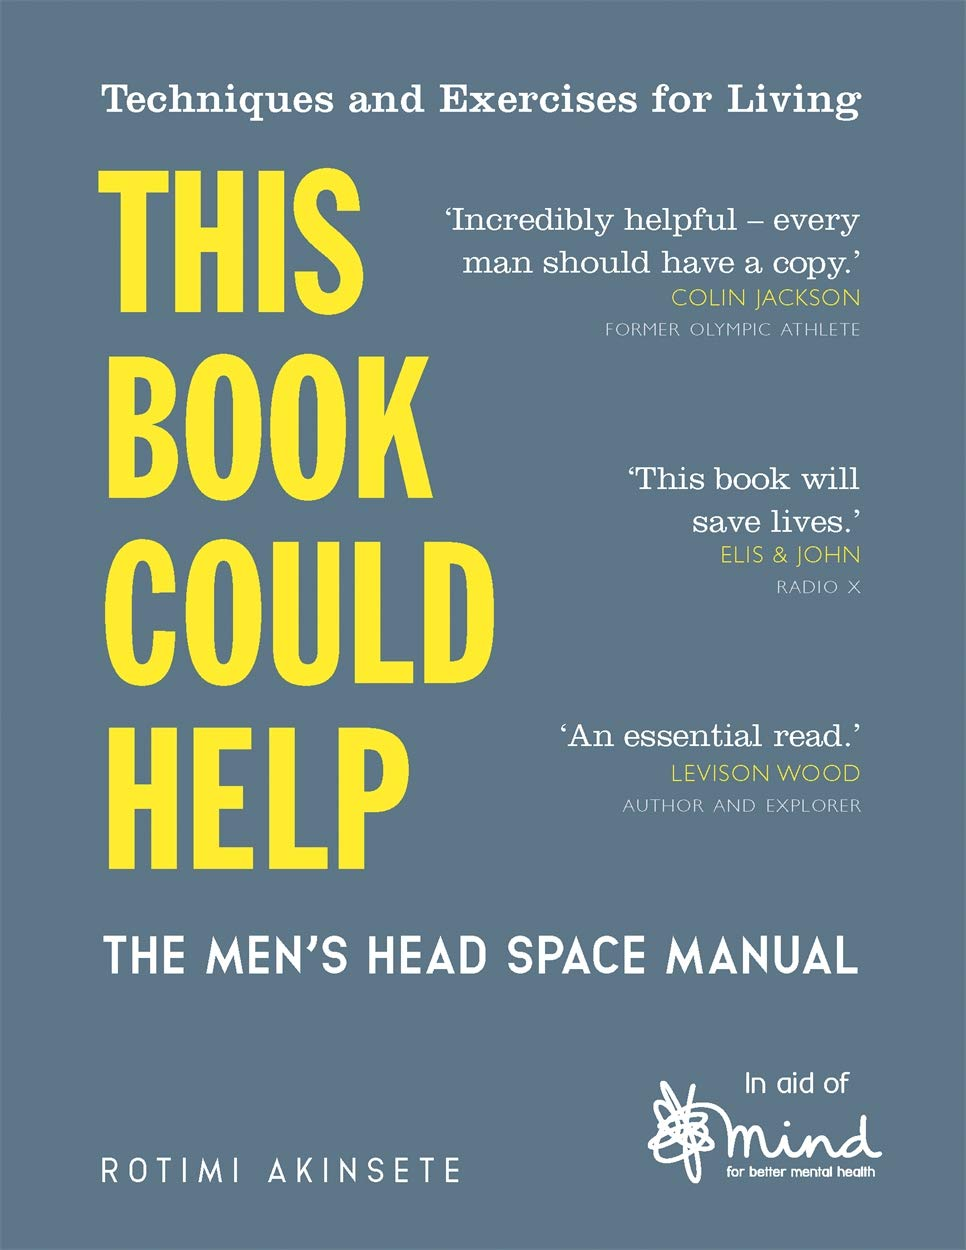 This Book Could Help : The Men's Head Space Manual - Techniques and Exercises for Living - Books - Spiffy